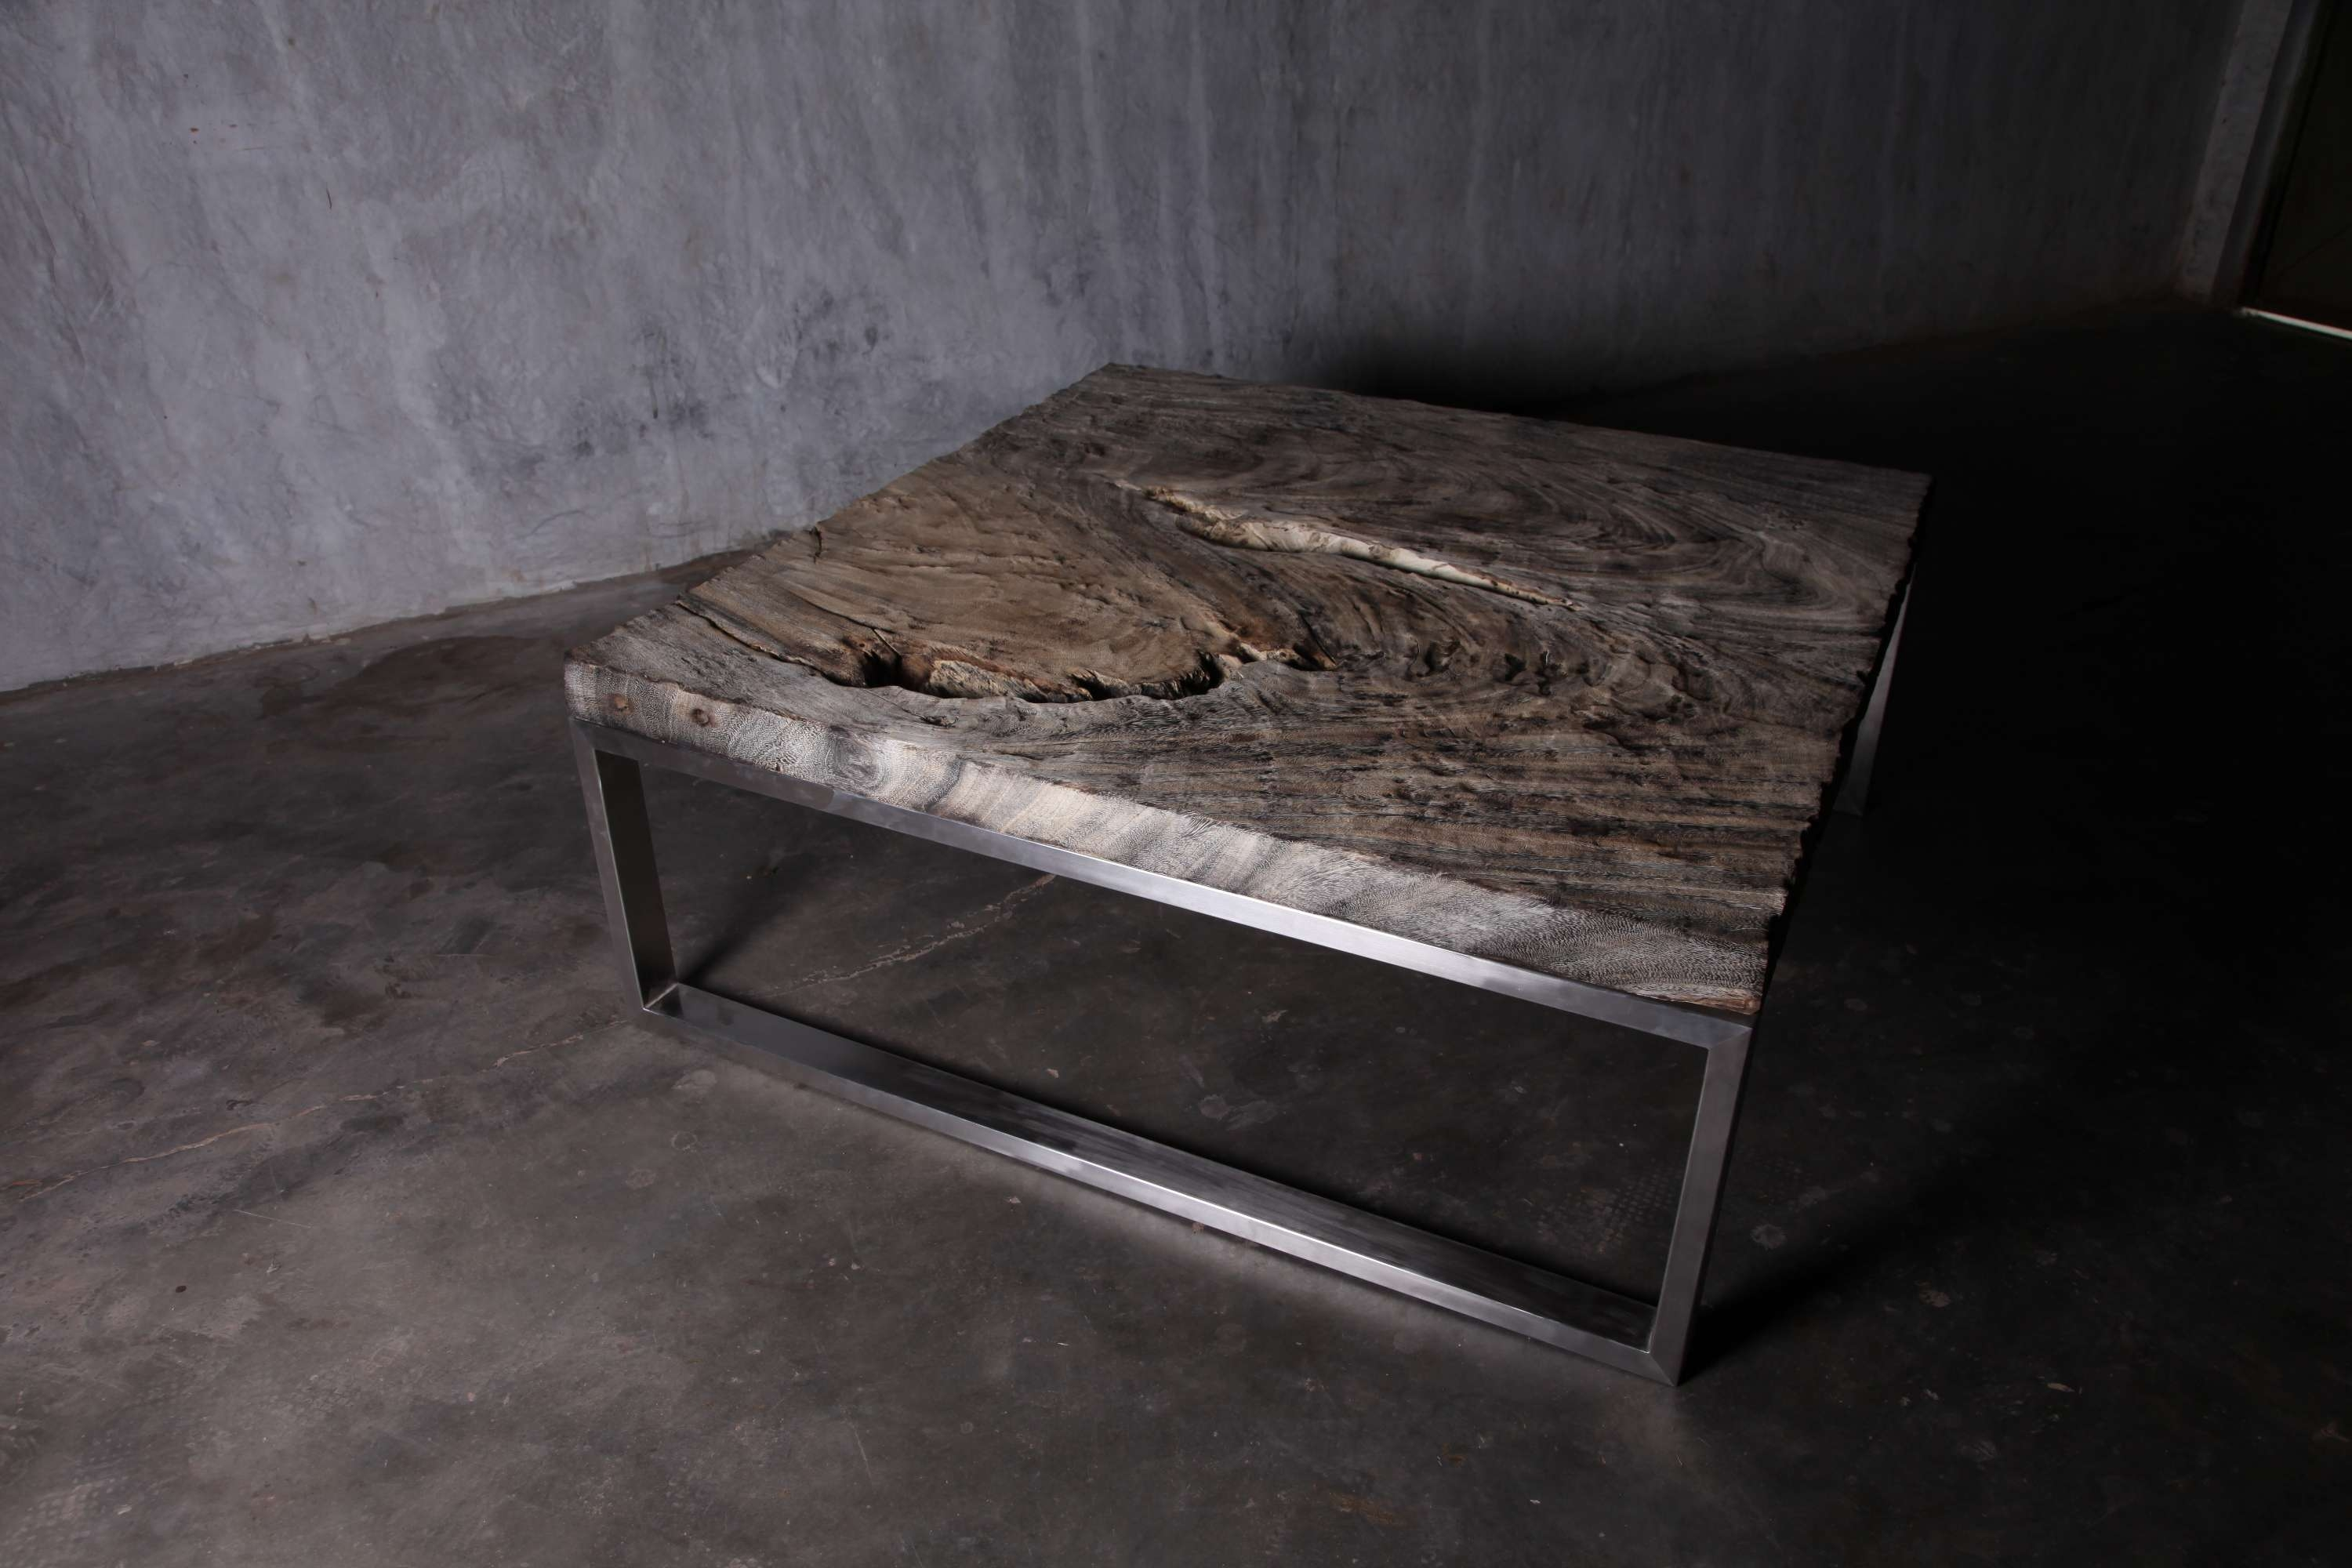 Rustic Square Coffee Table With Storage With Metal Materials Base Inside Popular Square Stone Coffee Tables (View 16 of 20)